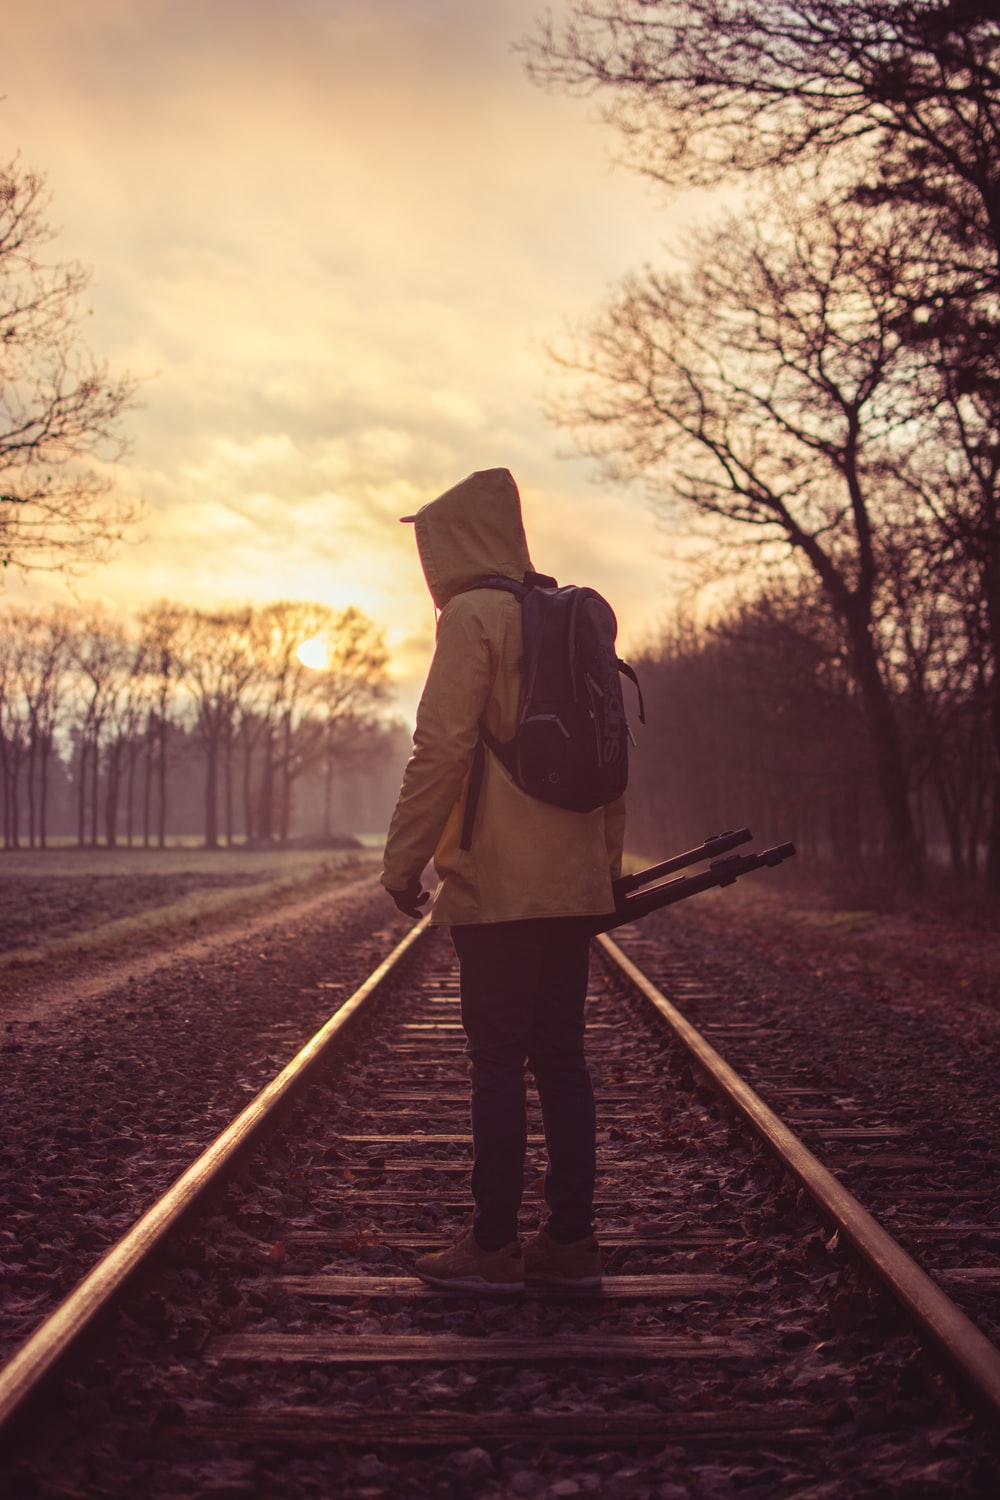 person on train rails near bare trees at daytime